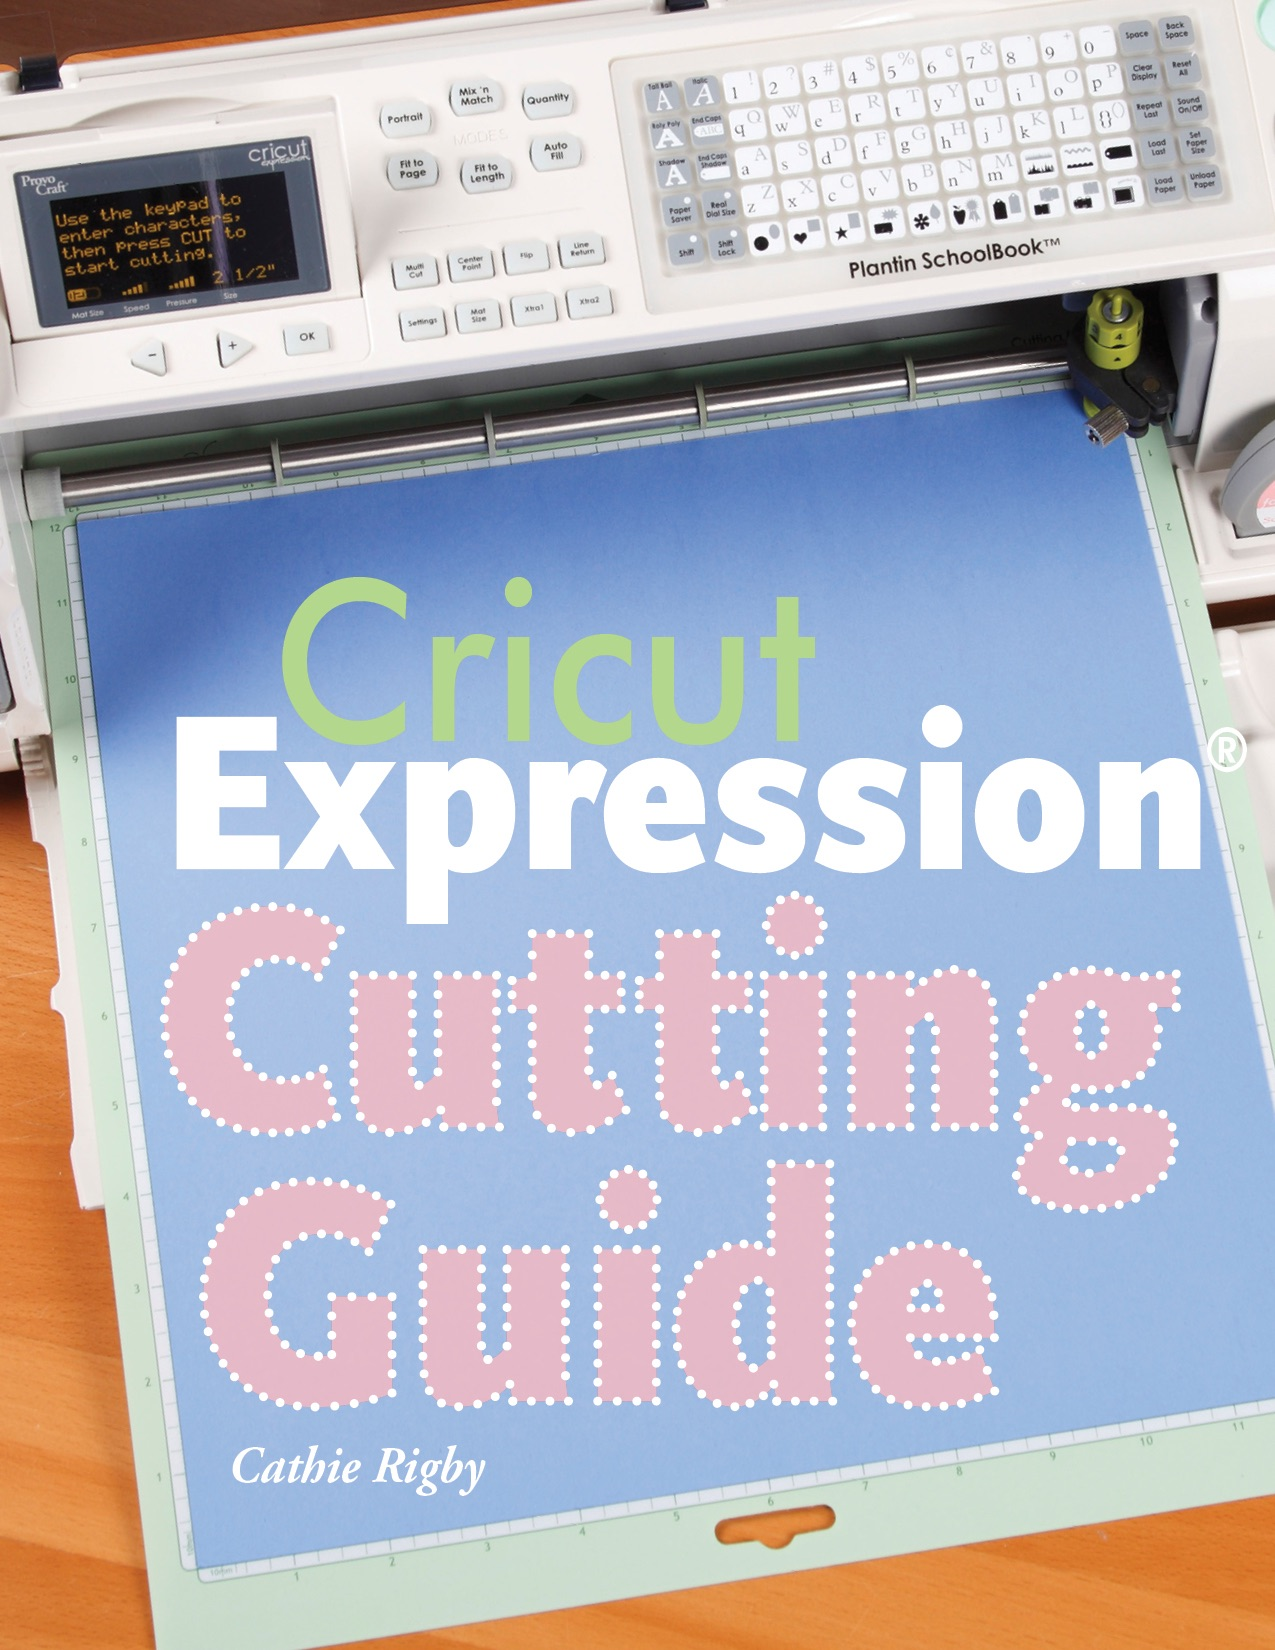 cricut expression u00ae cutting guide by cathie rigby on ibooks ibooks author user guide pdf iBooks Author Tutorials